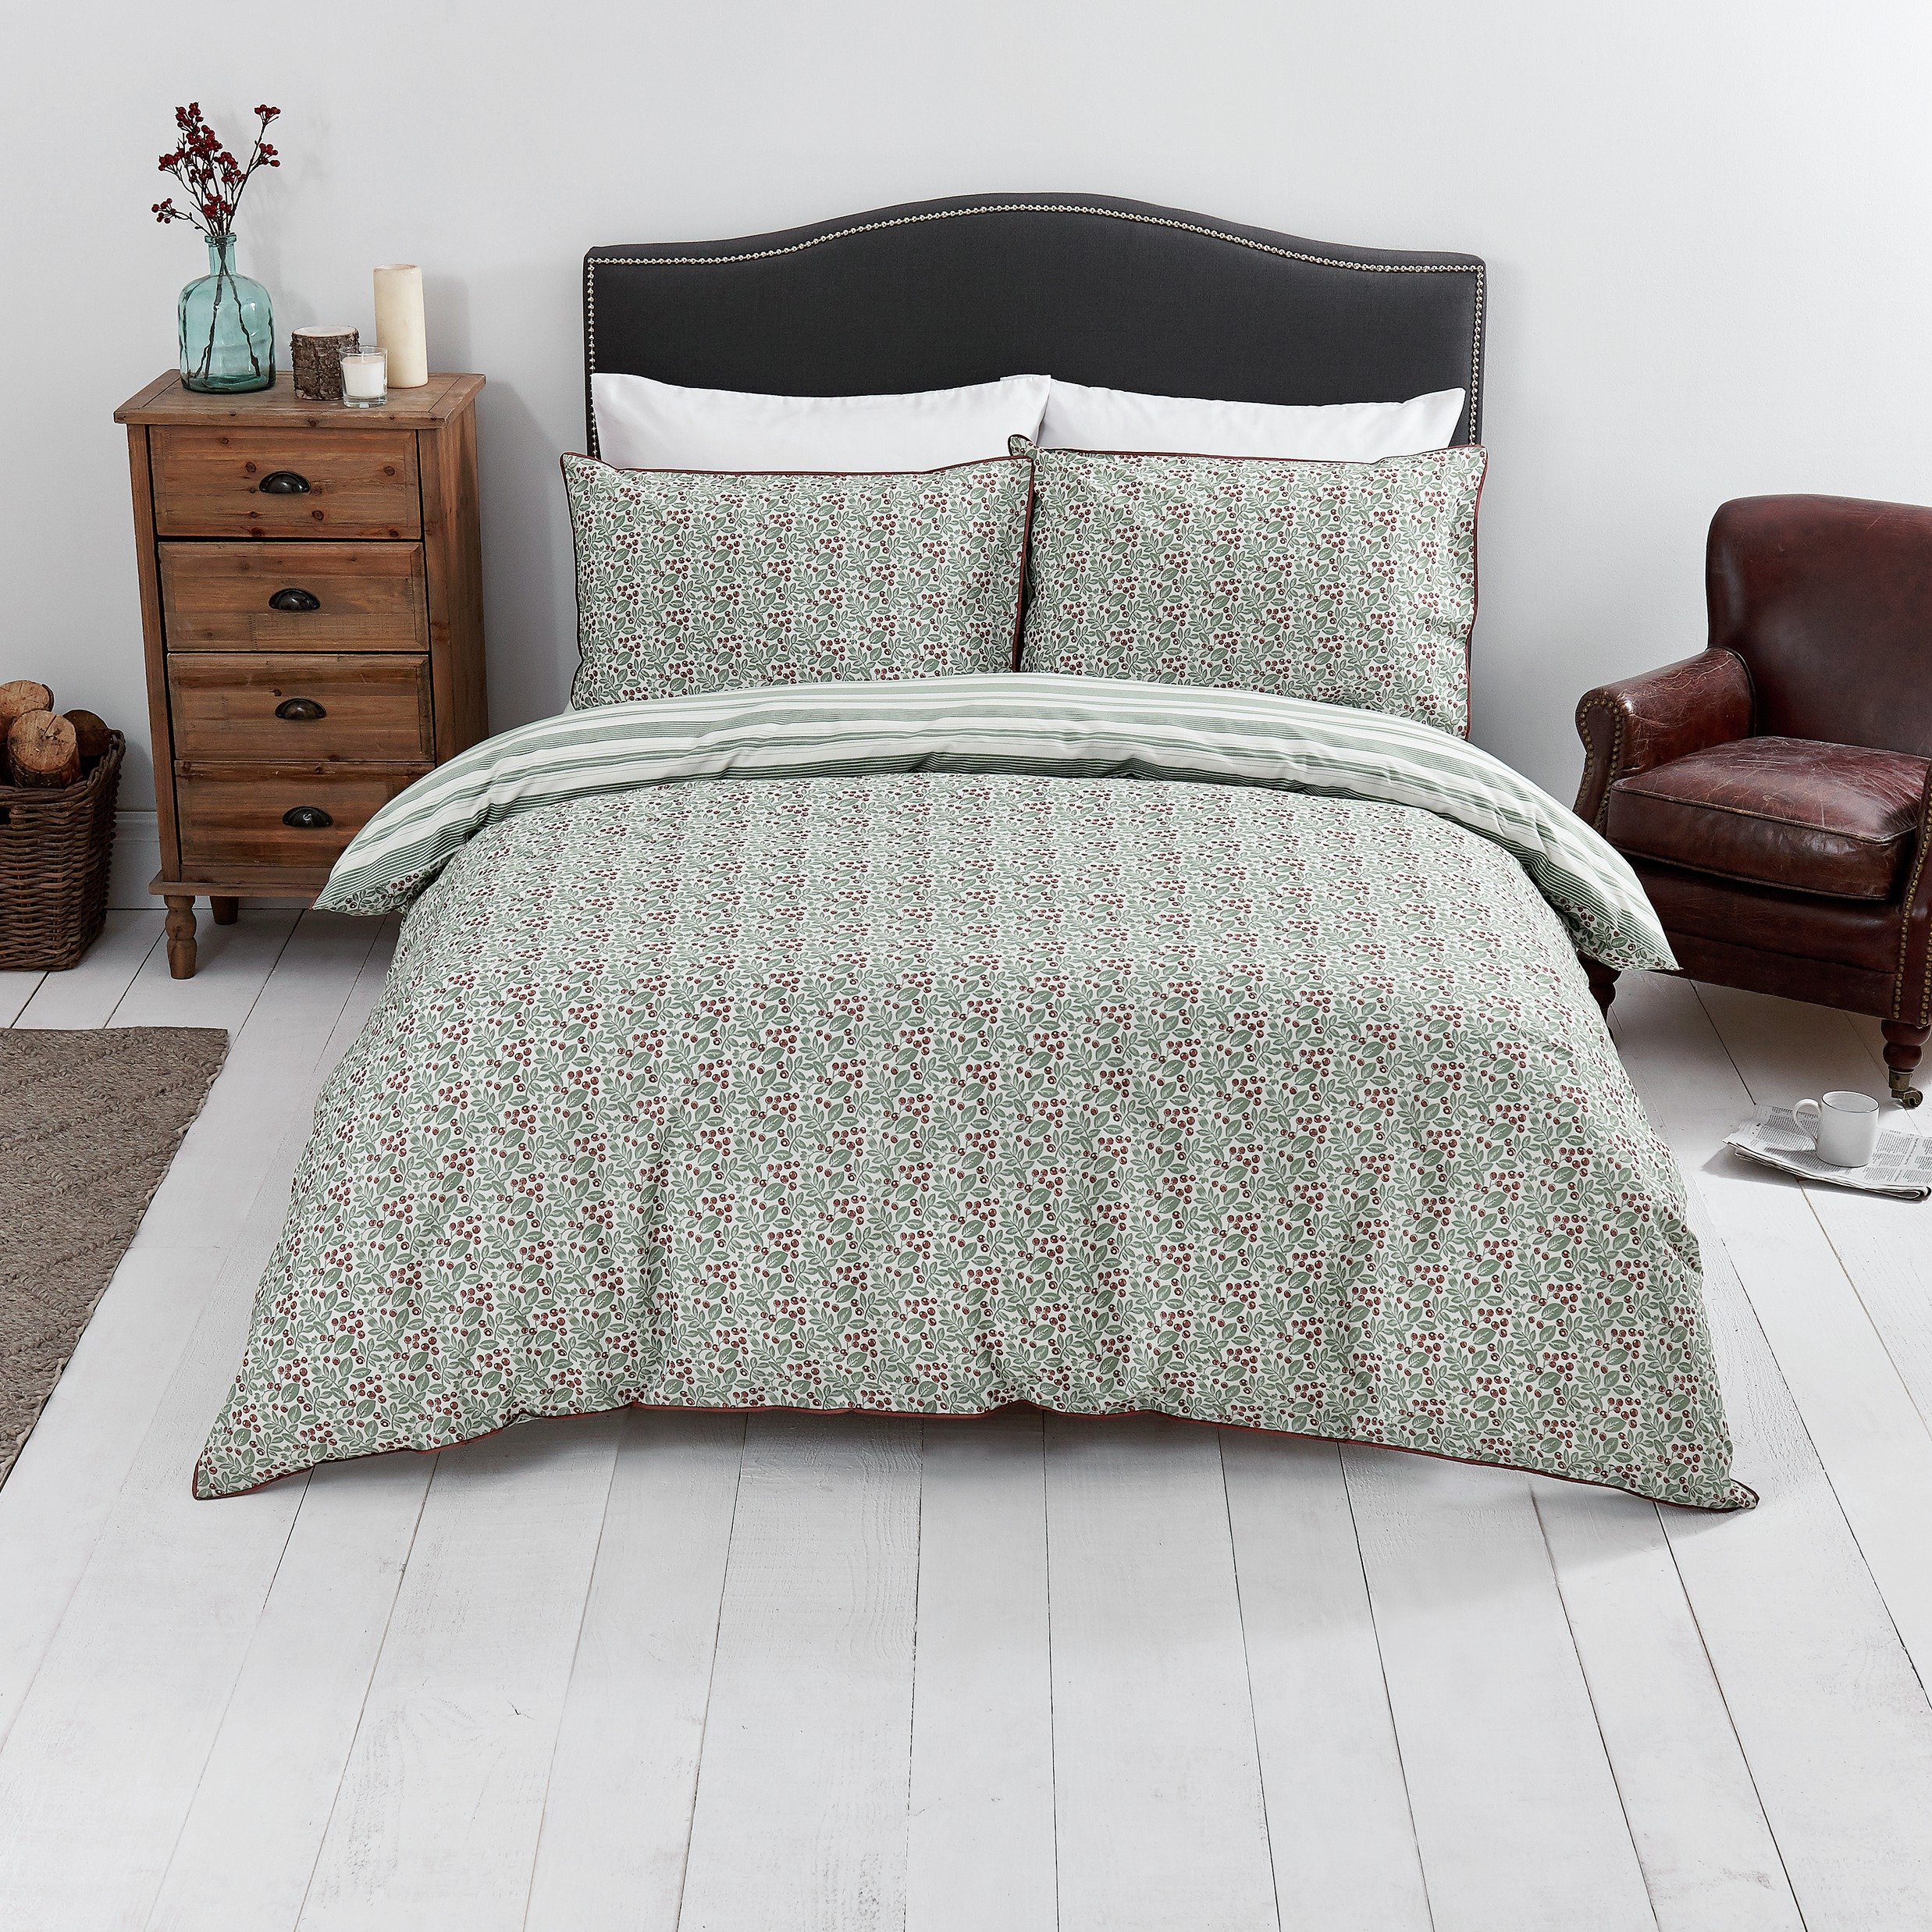 SALE On Sainsbury's Home Berries Print Duvet Cover Set